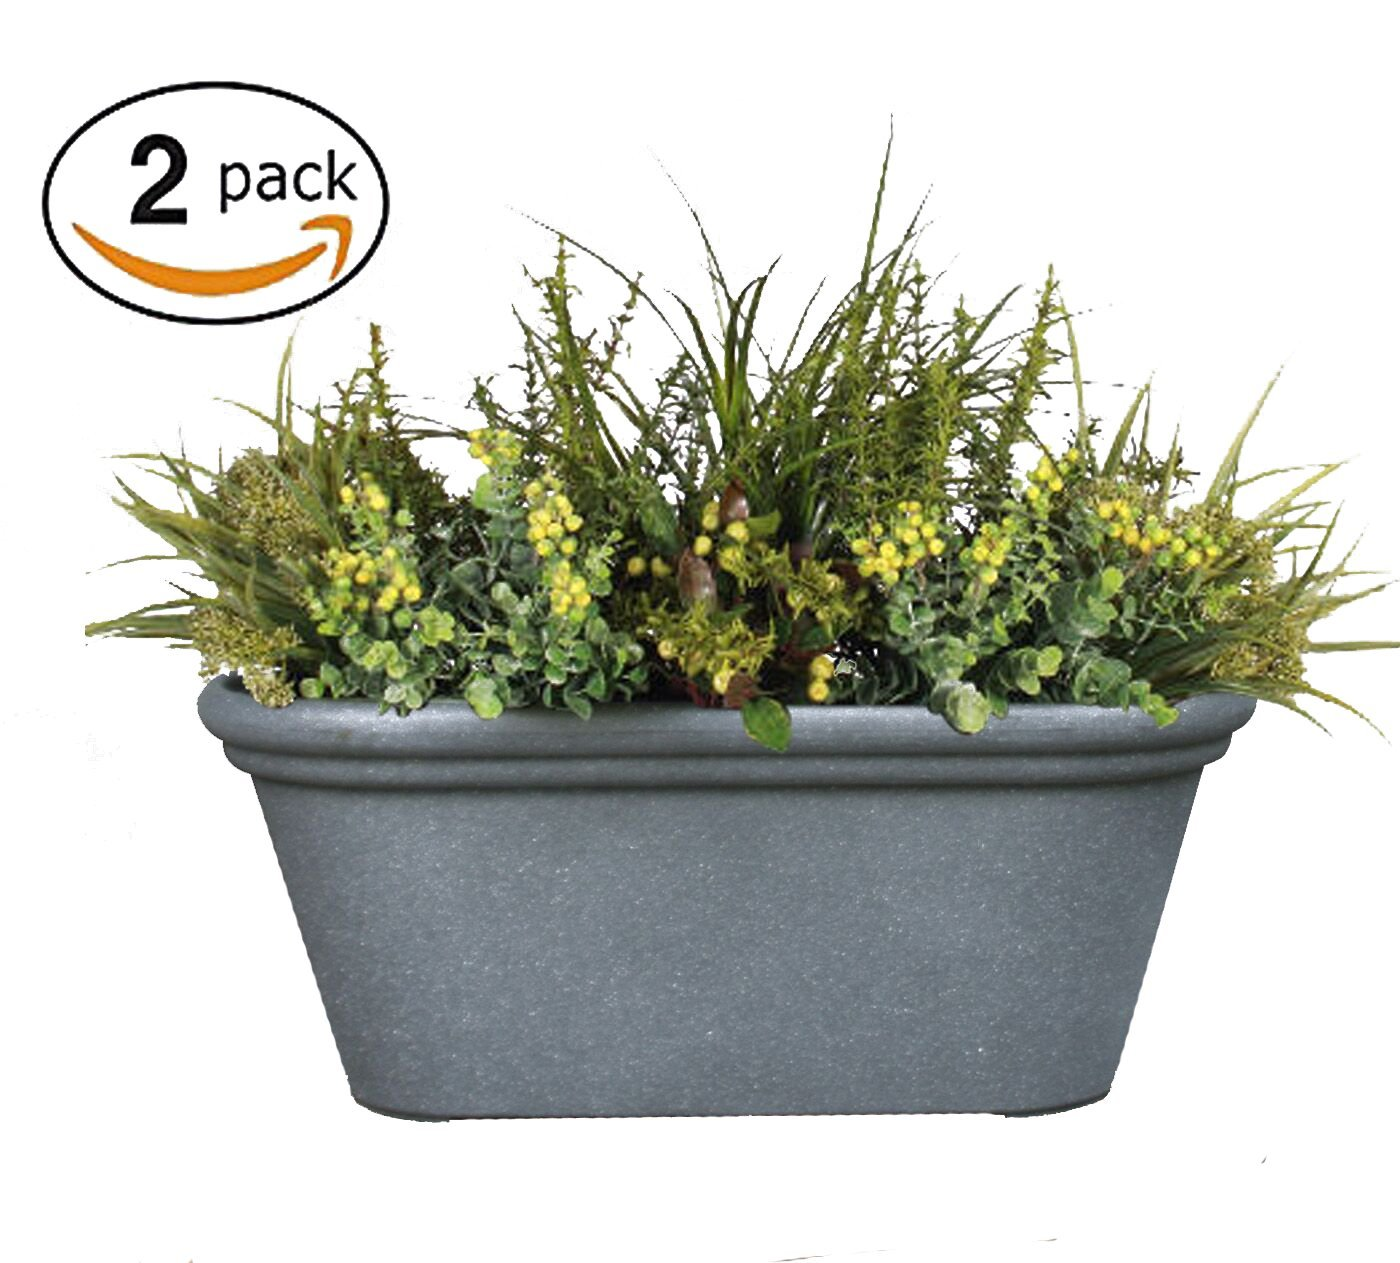 Flower Pot 2 Pack TerraBox Planter, 15 inch Window Box, Outdoor and Indoor, Unbreakable Grey for Mothers Day Gift